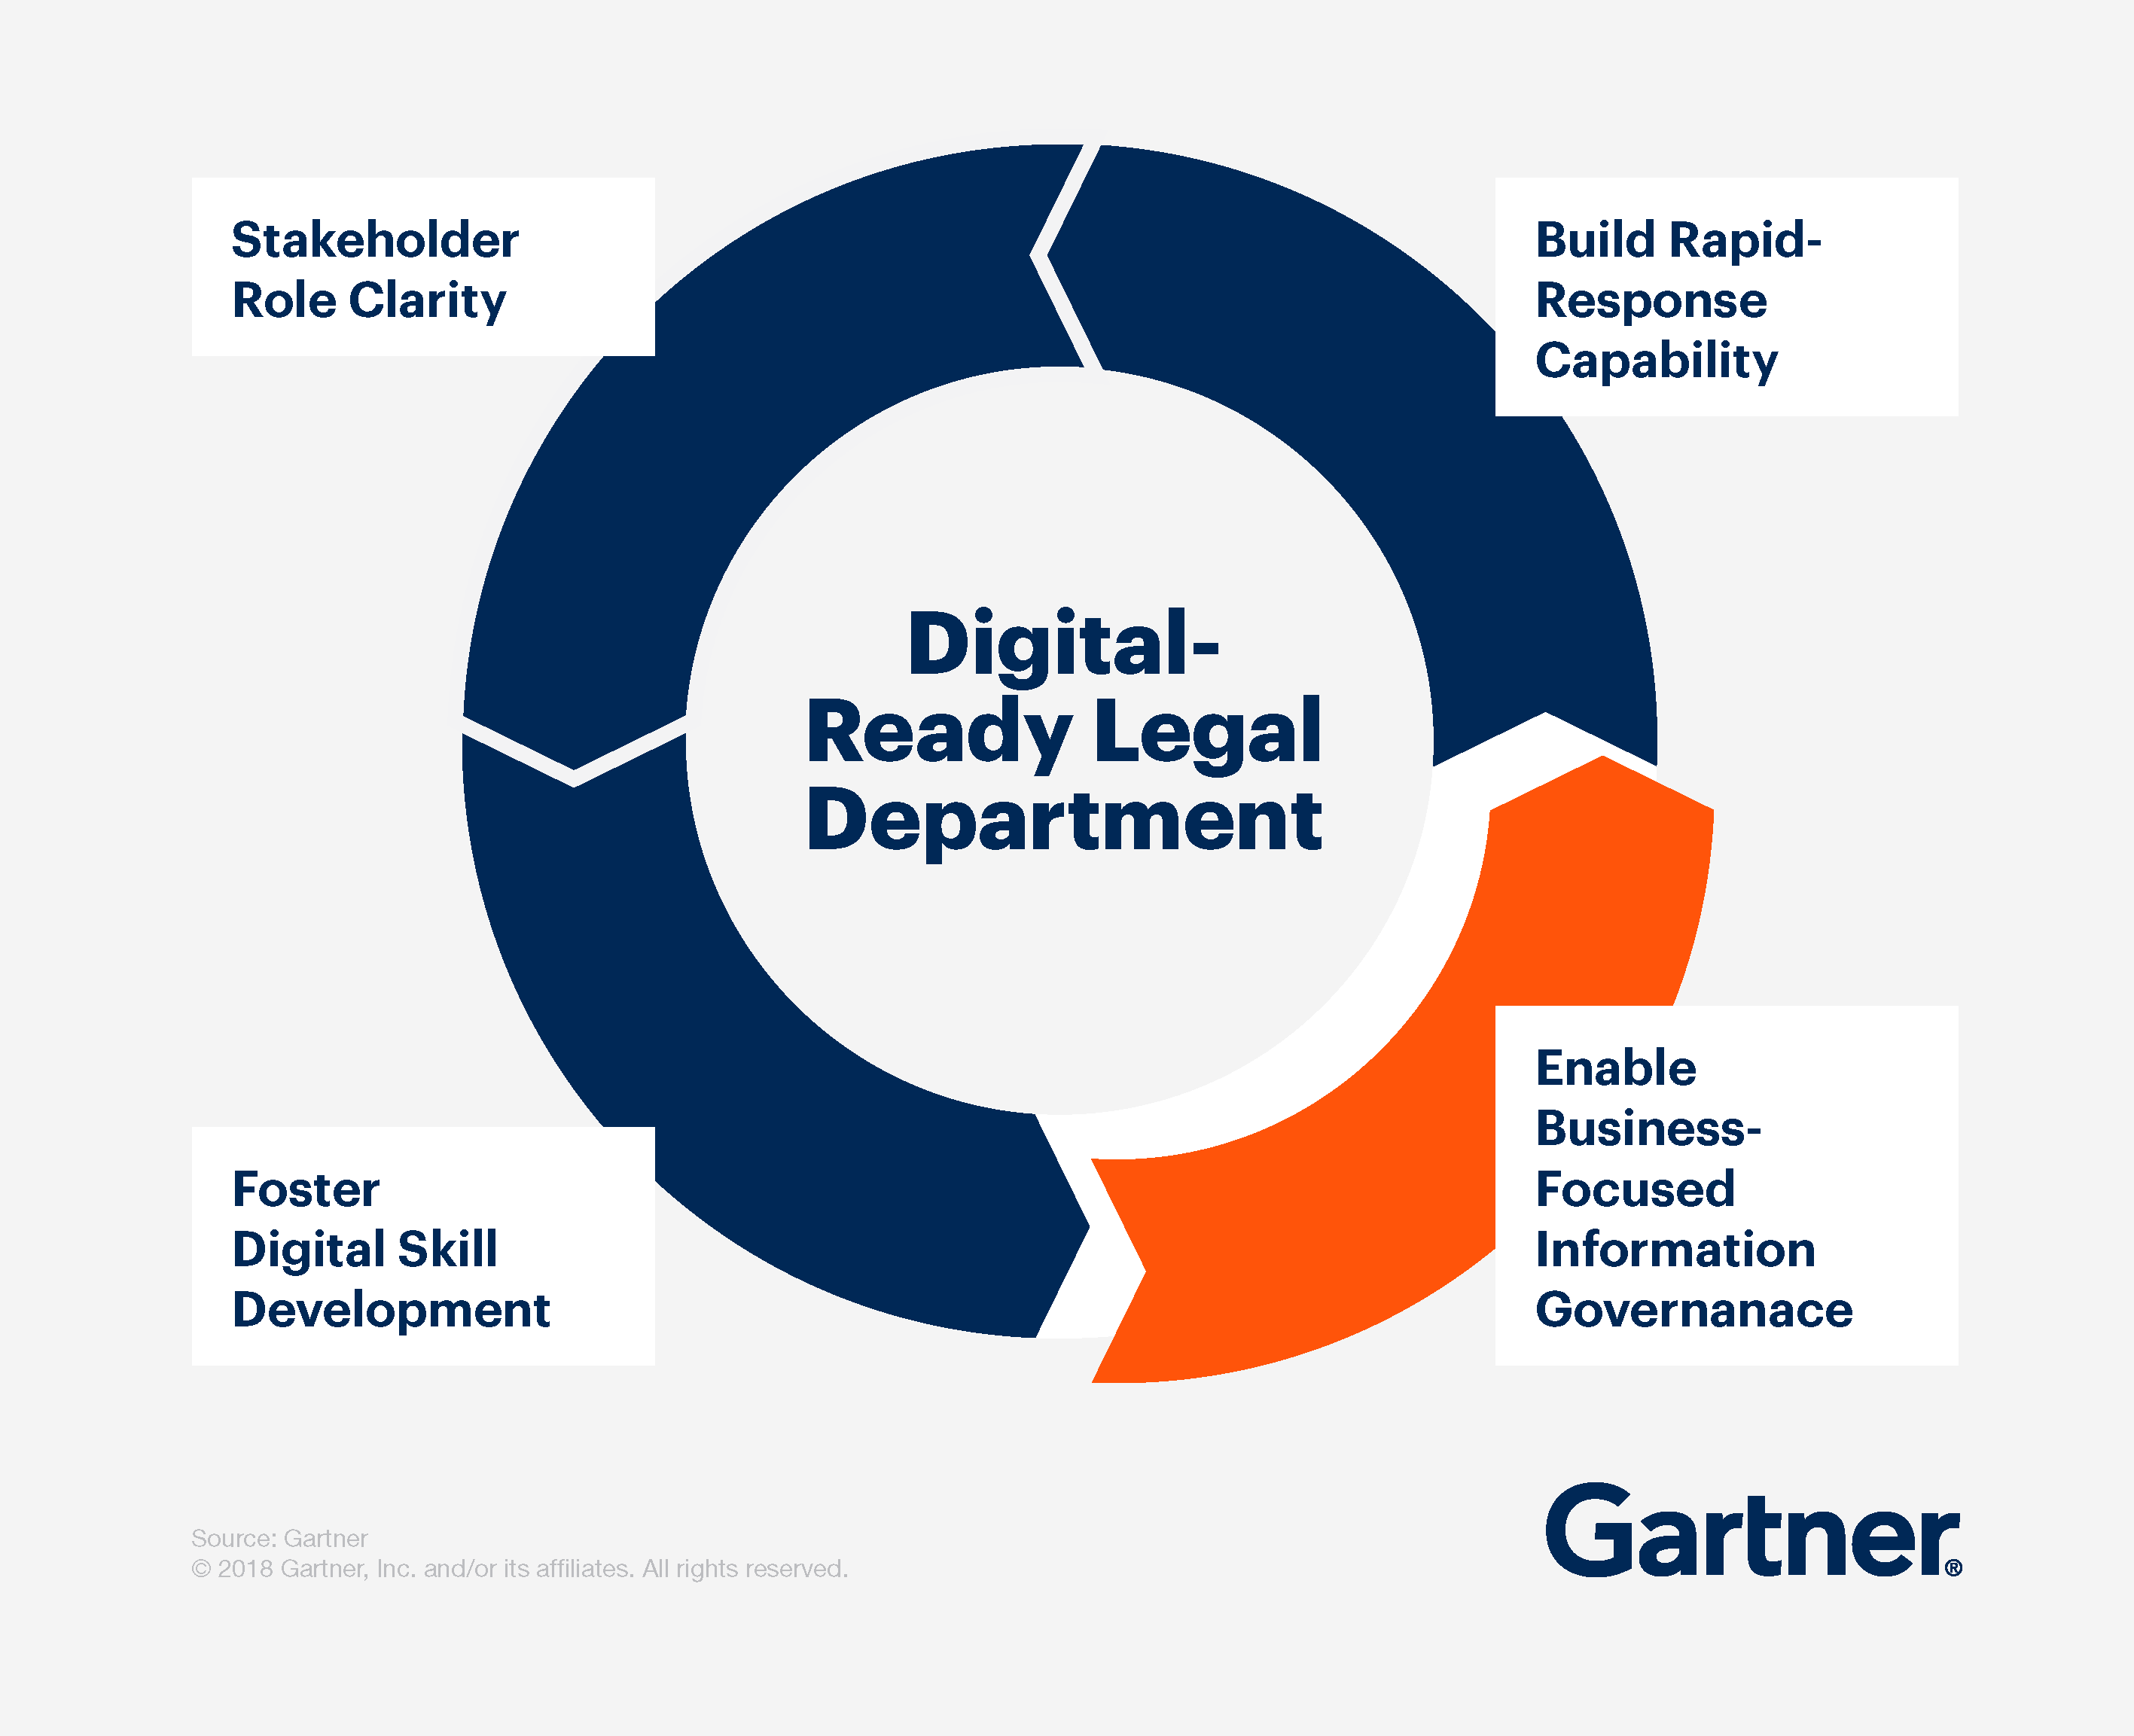 Digital-Ready Legal Department: Build Rapid-Response credibility, Stakeholder role clarity, Foster digital skill development, Enable business-focused information governance